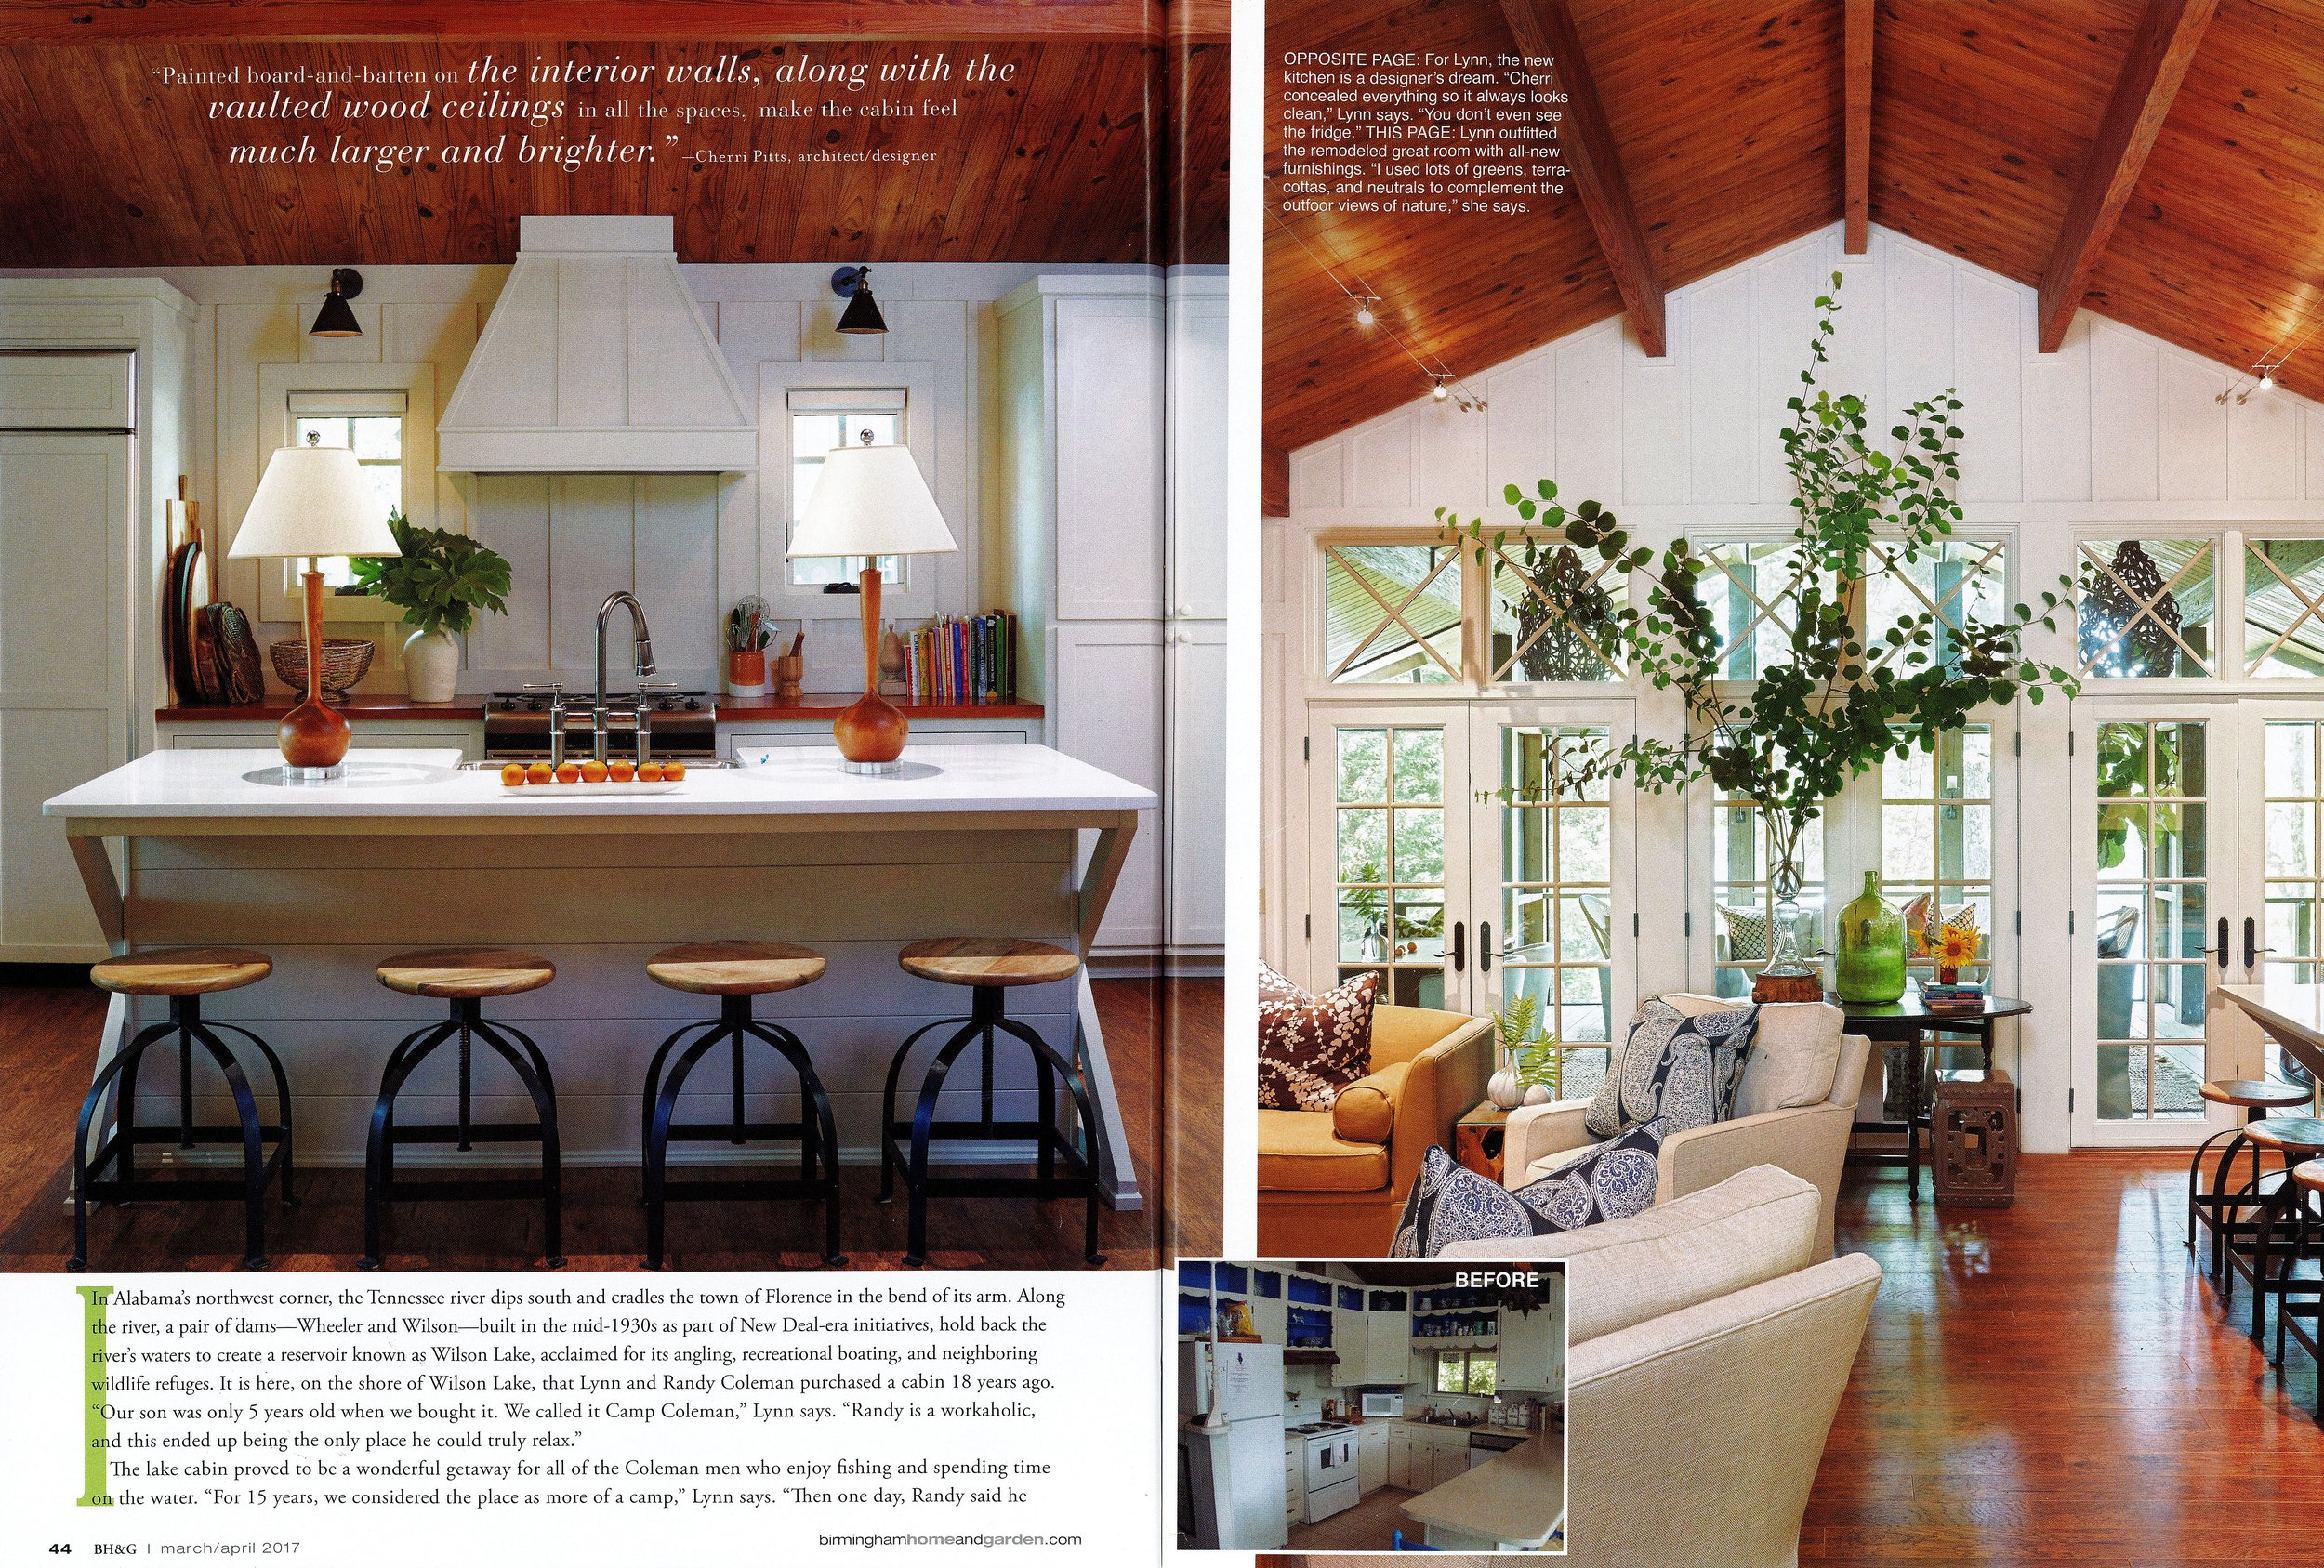 Birmingham Home & Garden 2017 magazine Camp Coleman page 3 architecture exterior and interior design Alabama